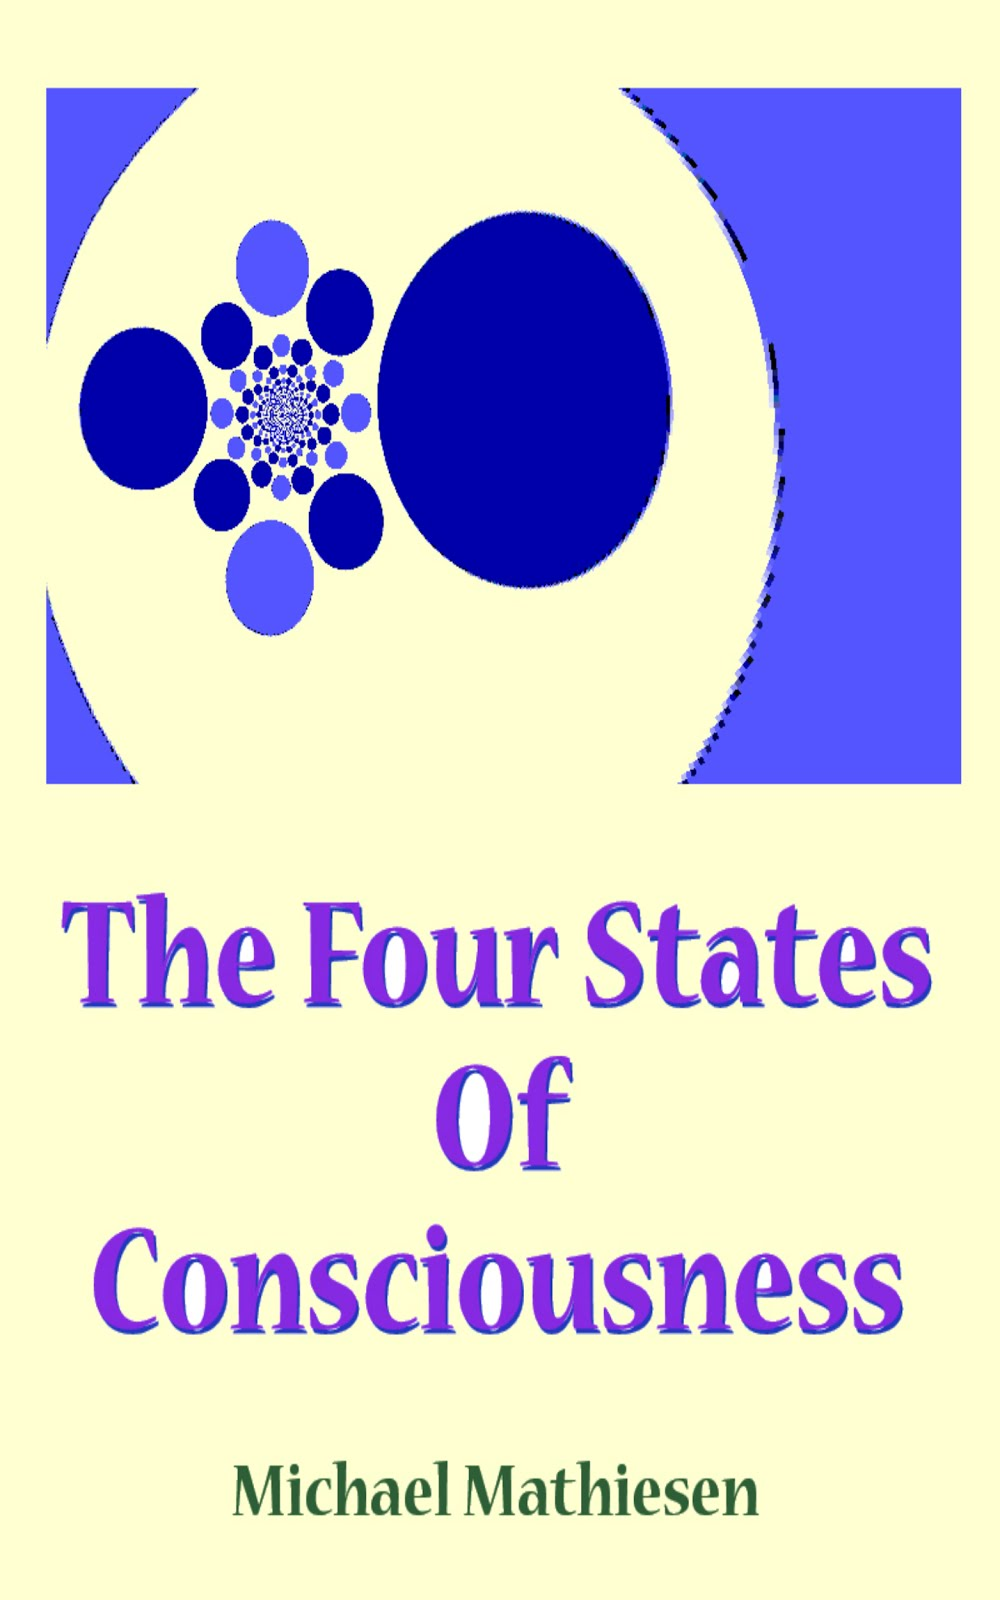 My Research On Consciousness